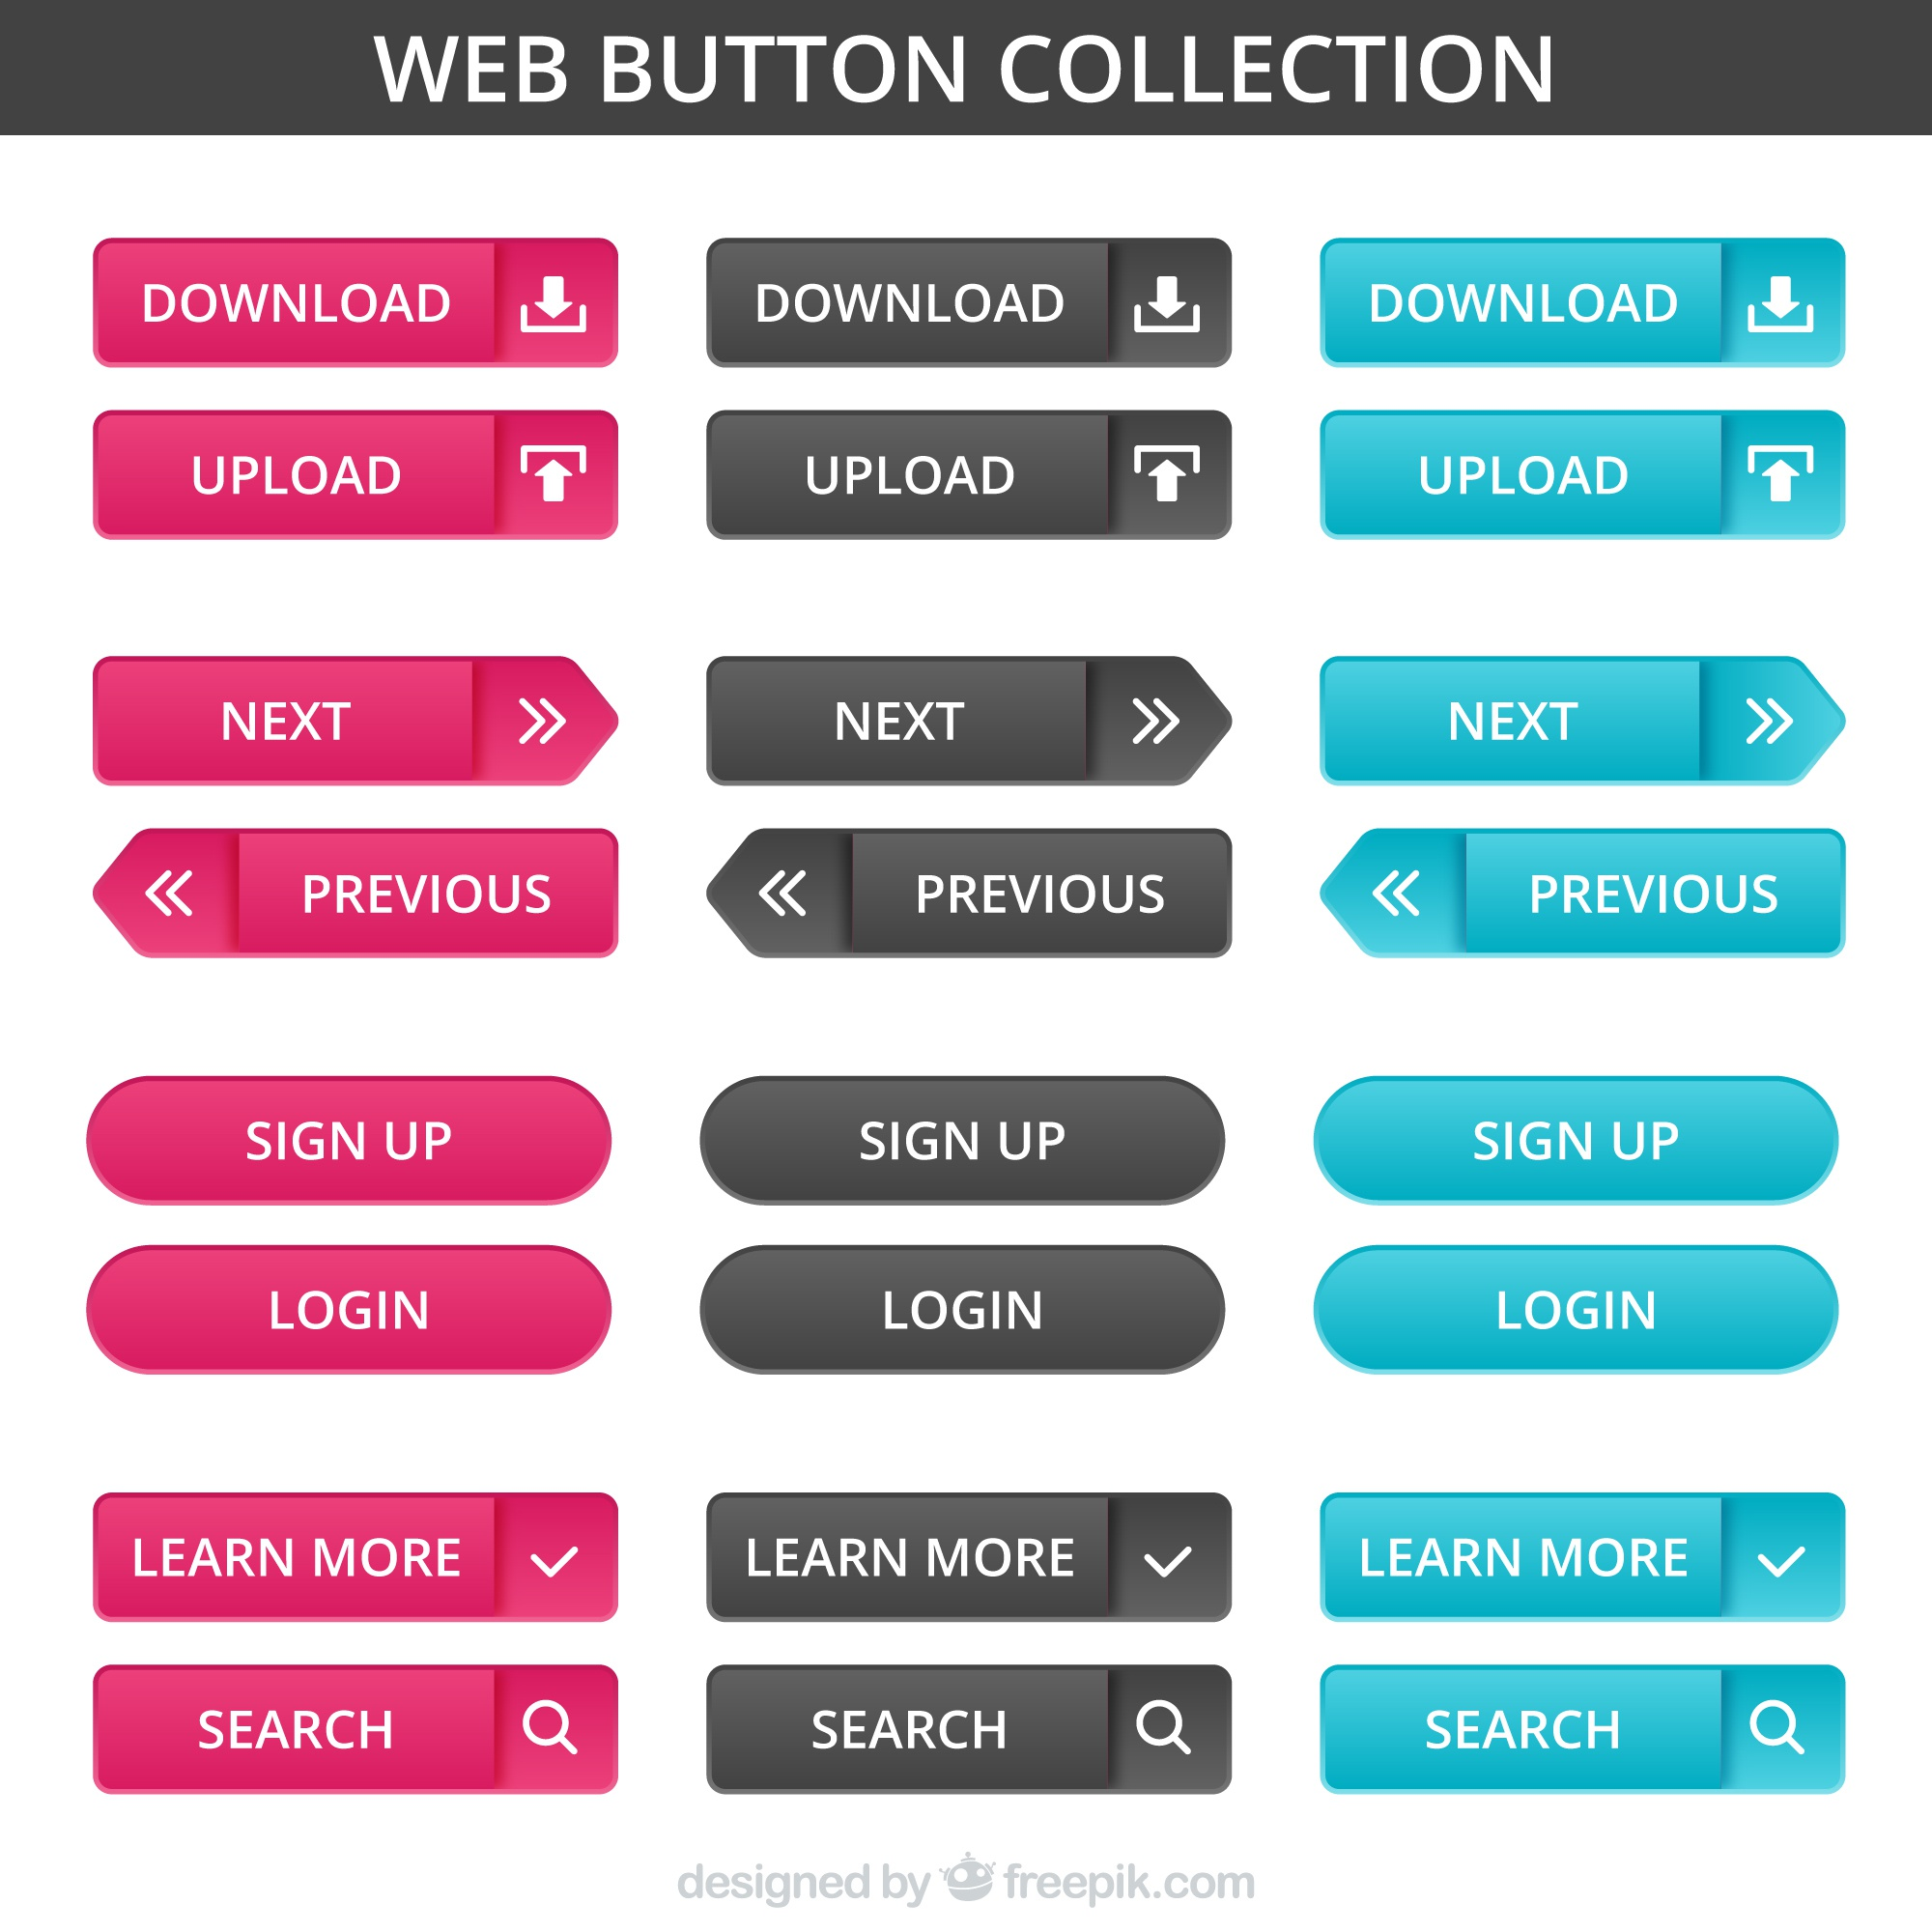 Different designs of web buttons